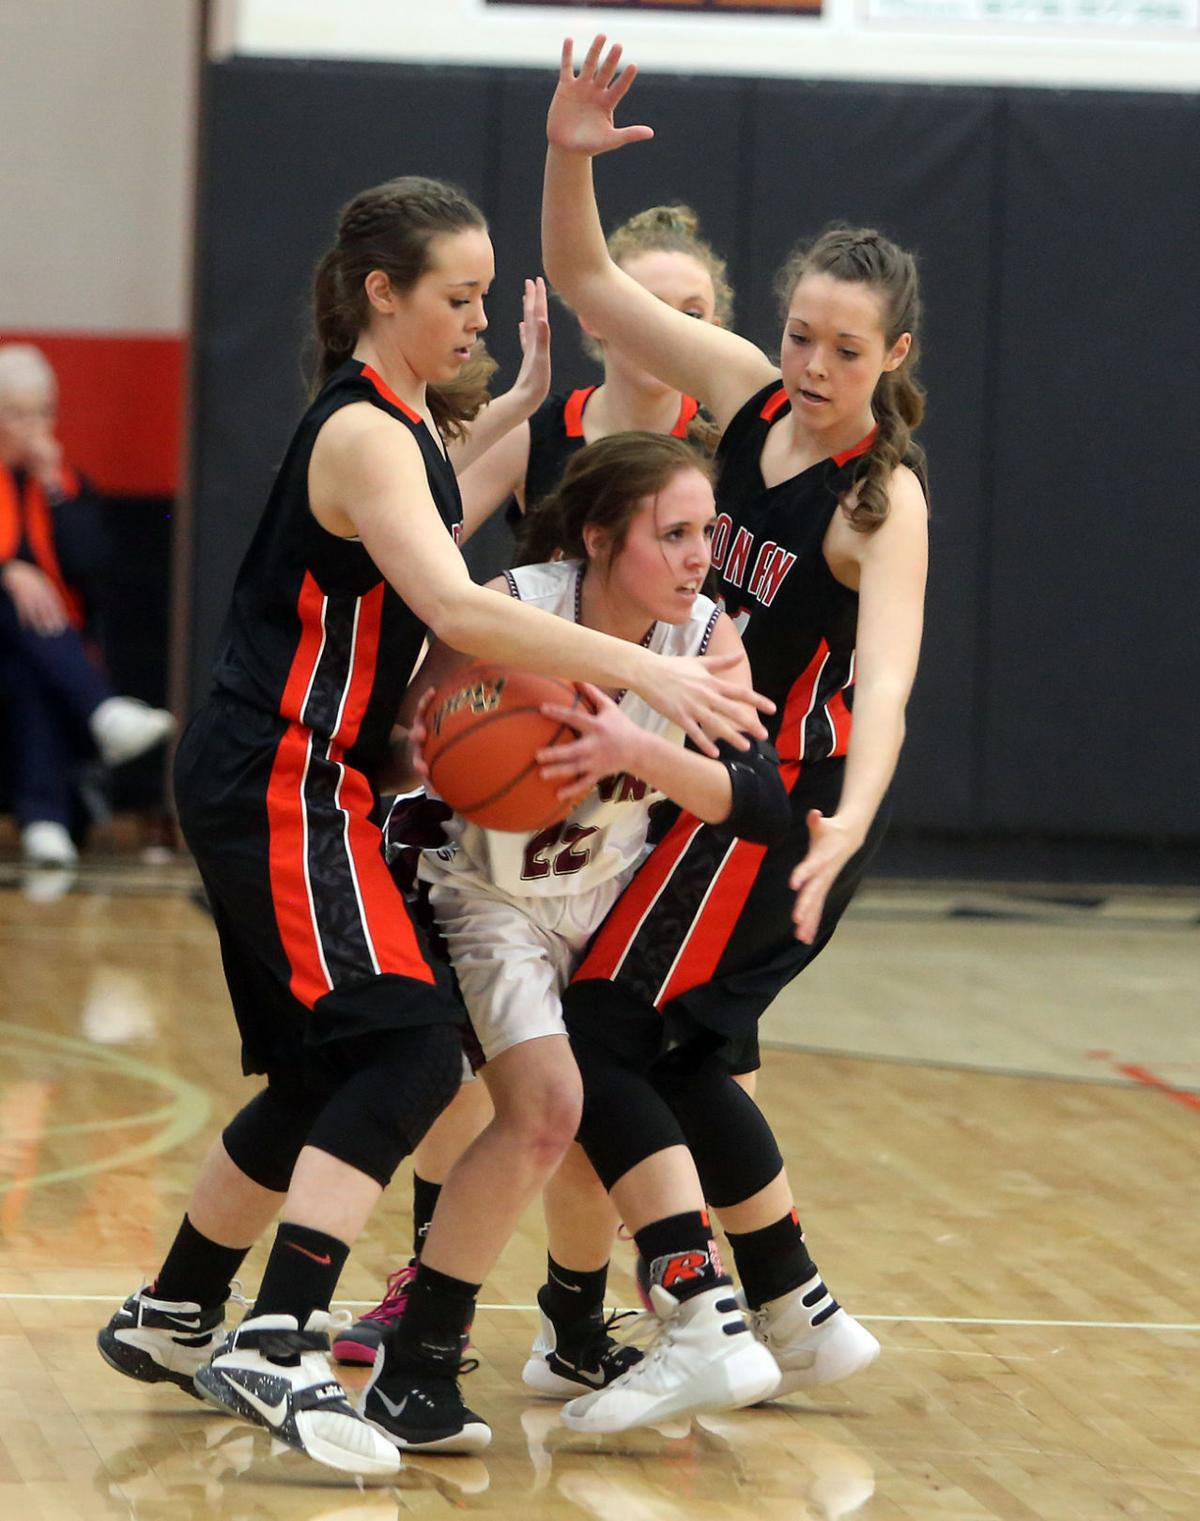 Florence to play at state tournament